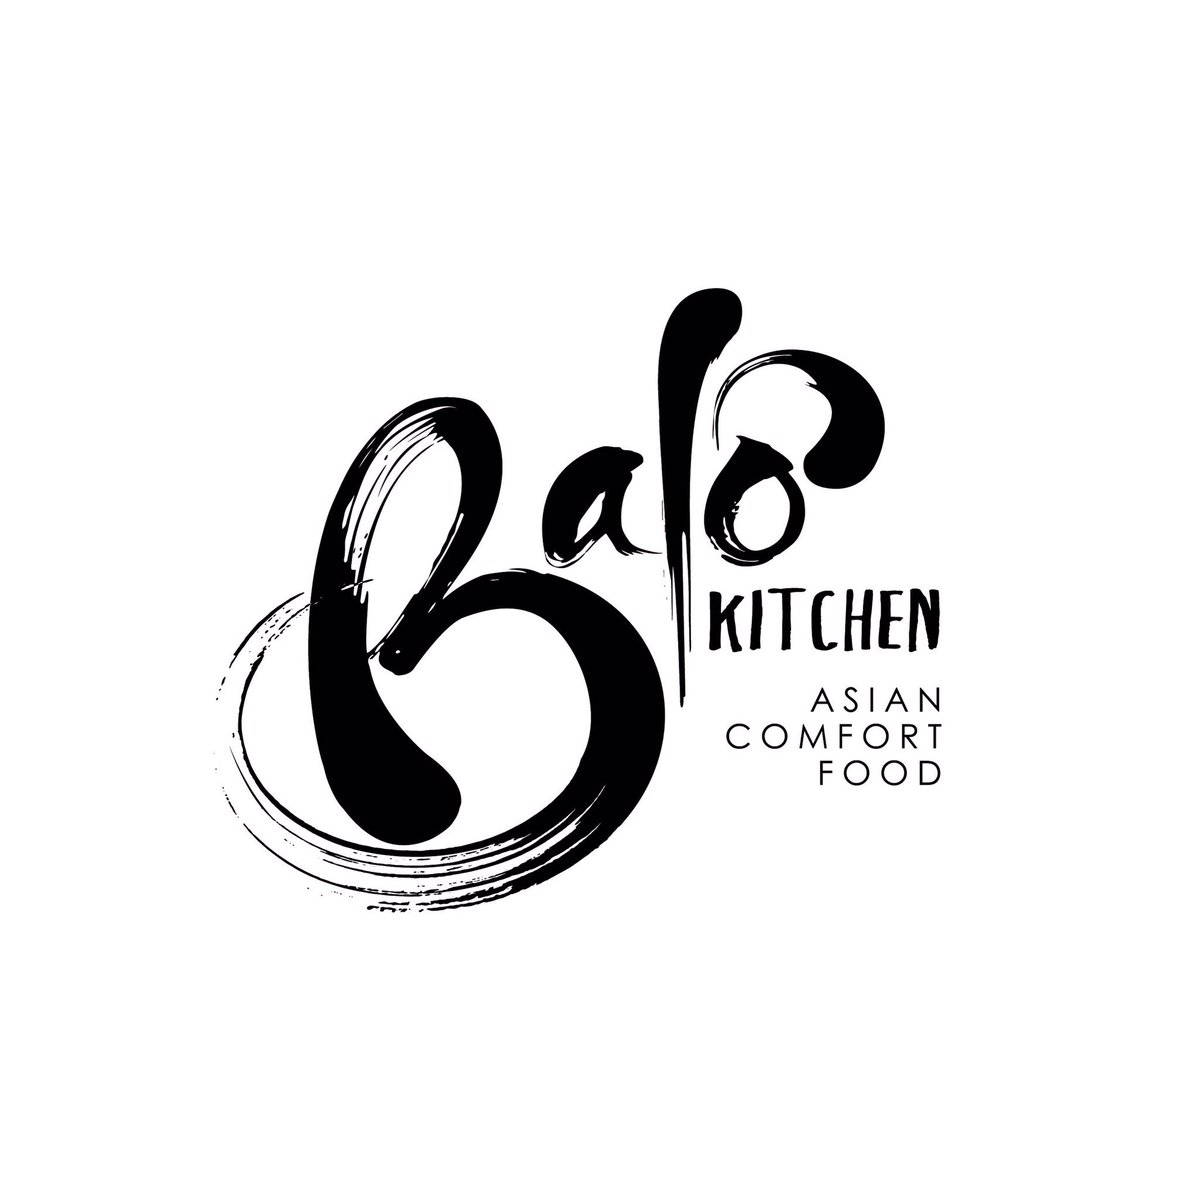 Coming soon... @balokitchen https://t.co/sr3lGJcXAw